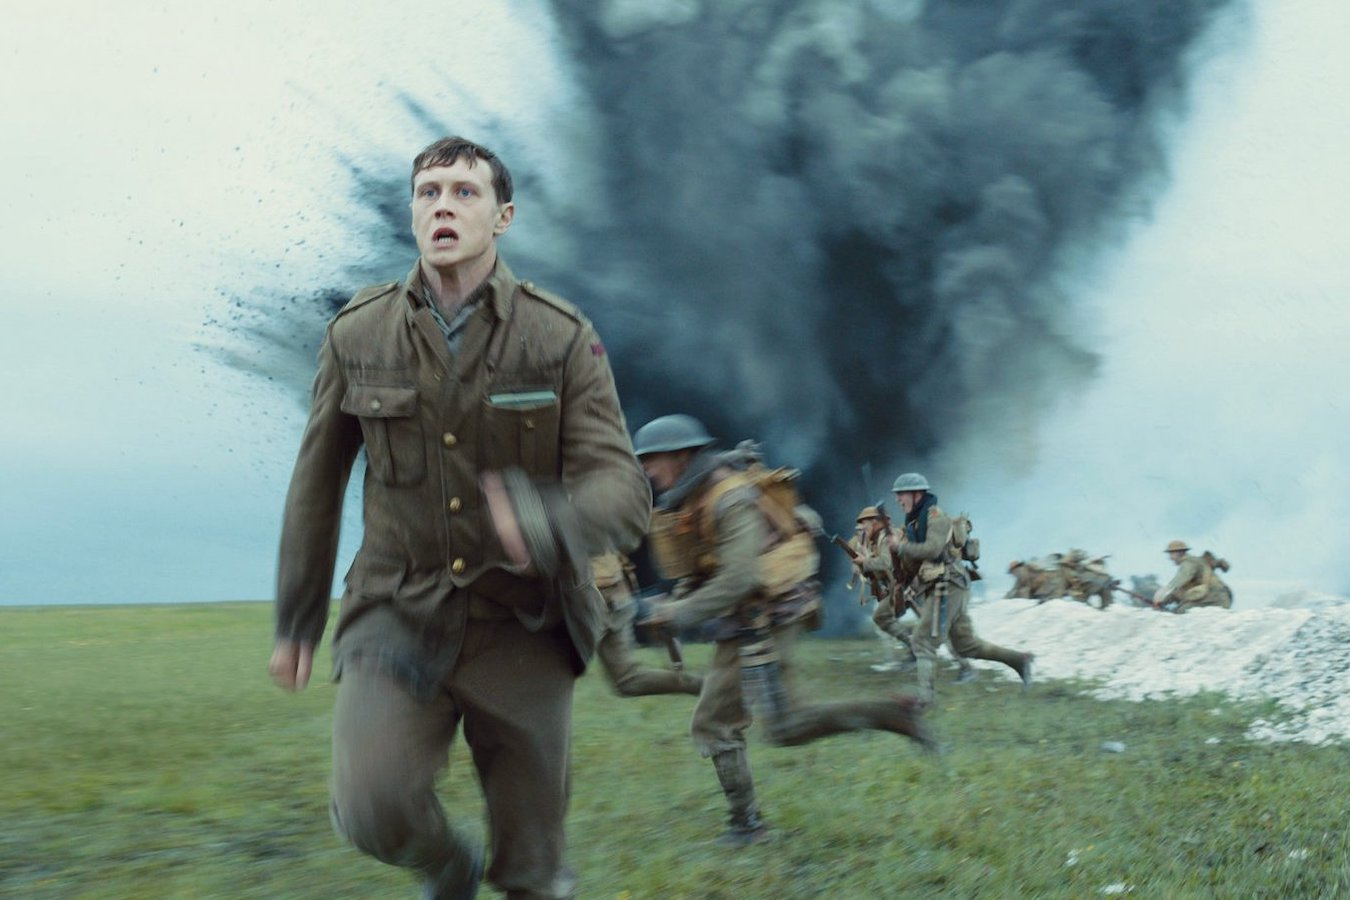 WWI Drama '1917' Leads All Military Movies With 10 Oscar Nominations